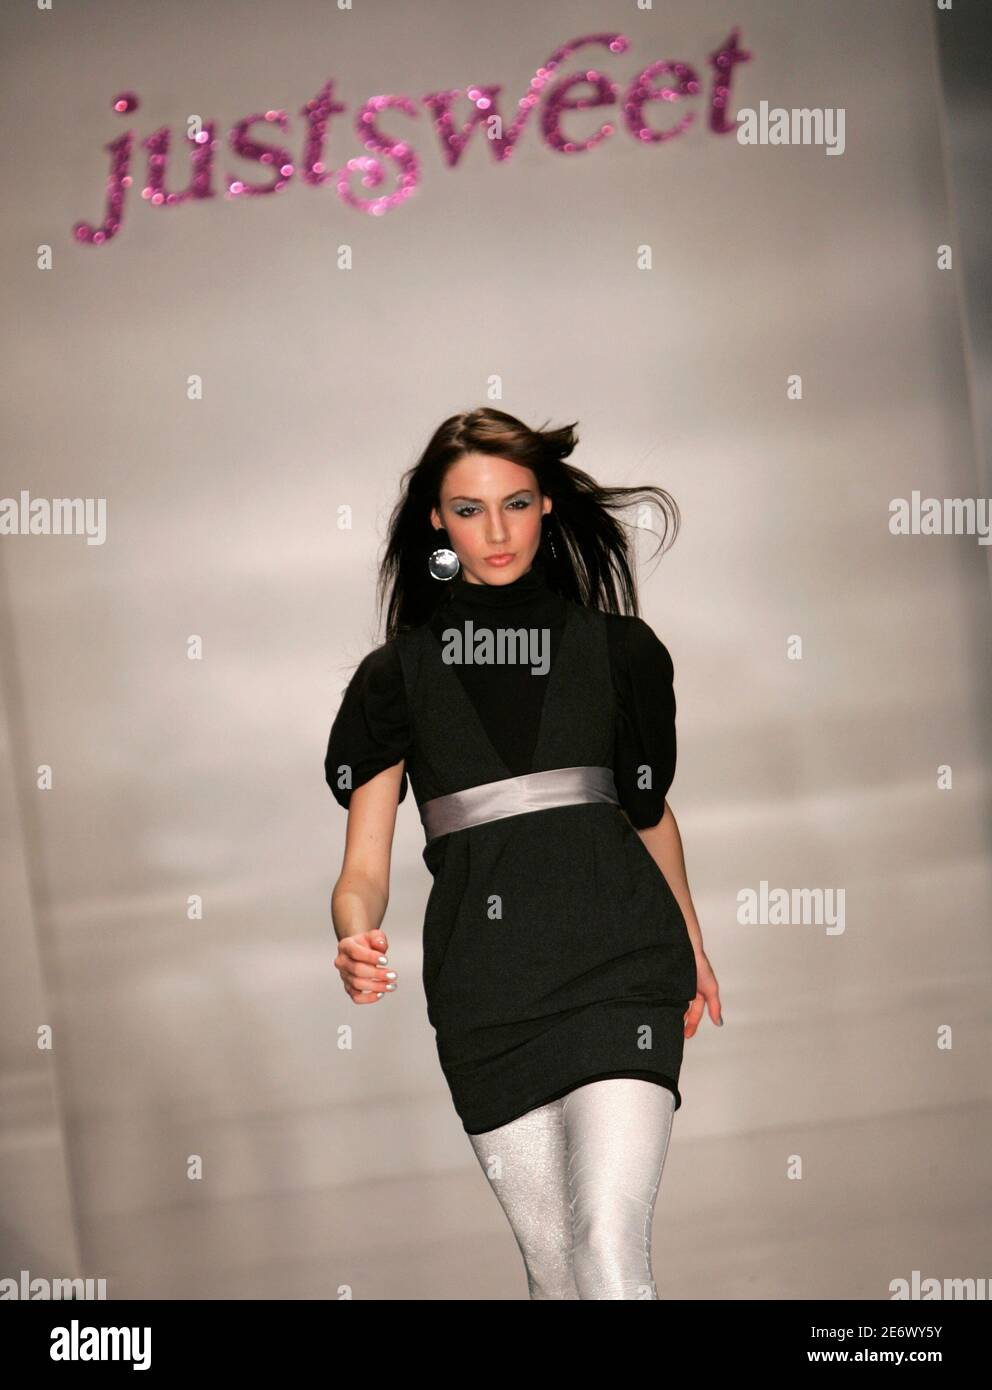 A model presents a creation from the Justsweet creation by Jennifer Lopez during Fashion Week in Miami Beach, Florida, March 23, 2006. Photo taken March 23, 2007.   REUTERS/Carlos Barria (UNITED STATES) Stock Photo